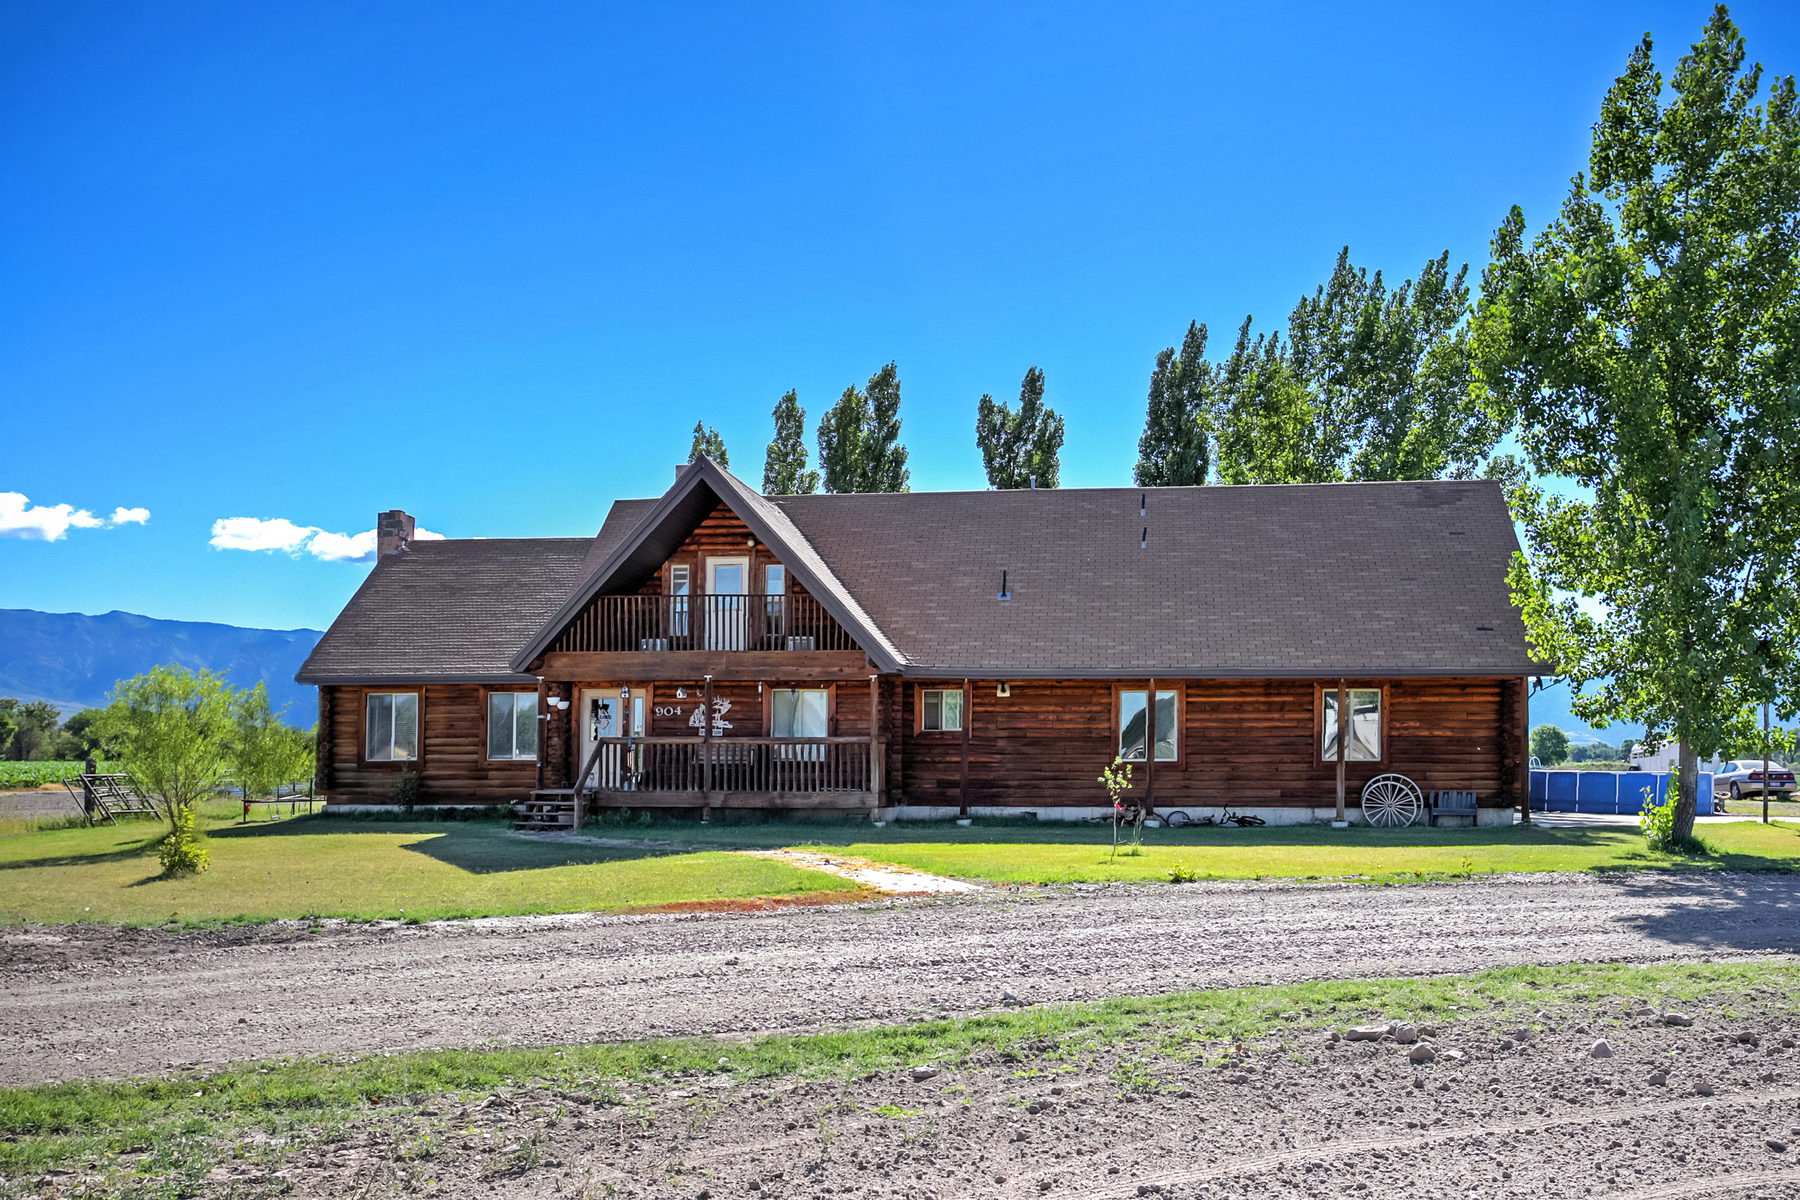 단독 가정 주택 용 매매 에 Unique Horse Property With Amazing Views 904 North 4400 West Ogden, 유타, 84404 미국